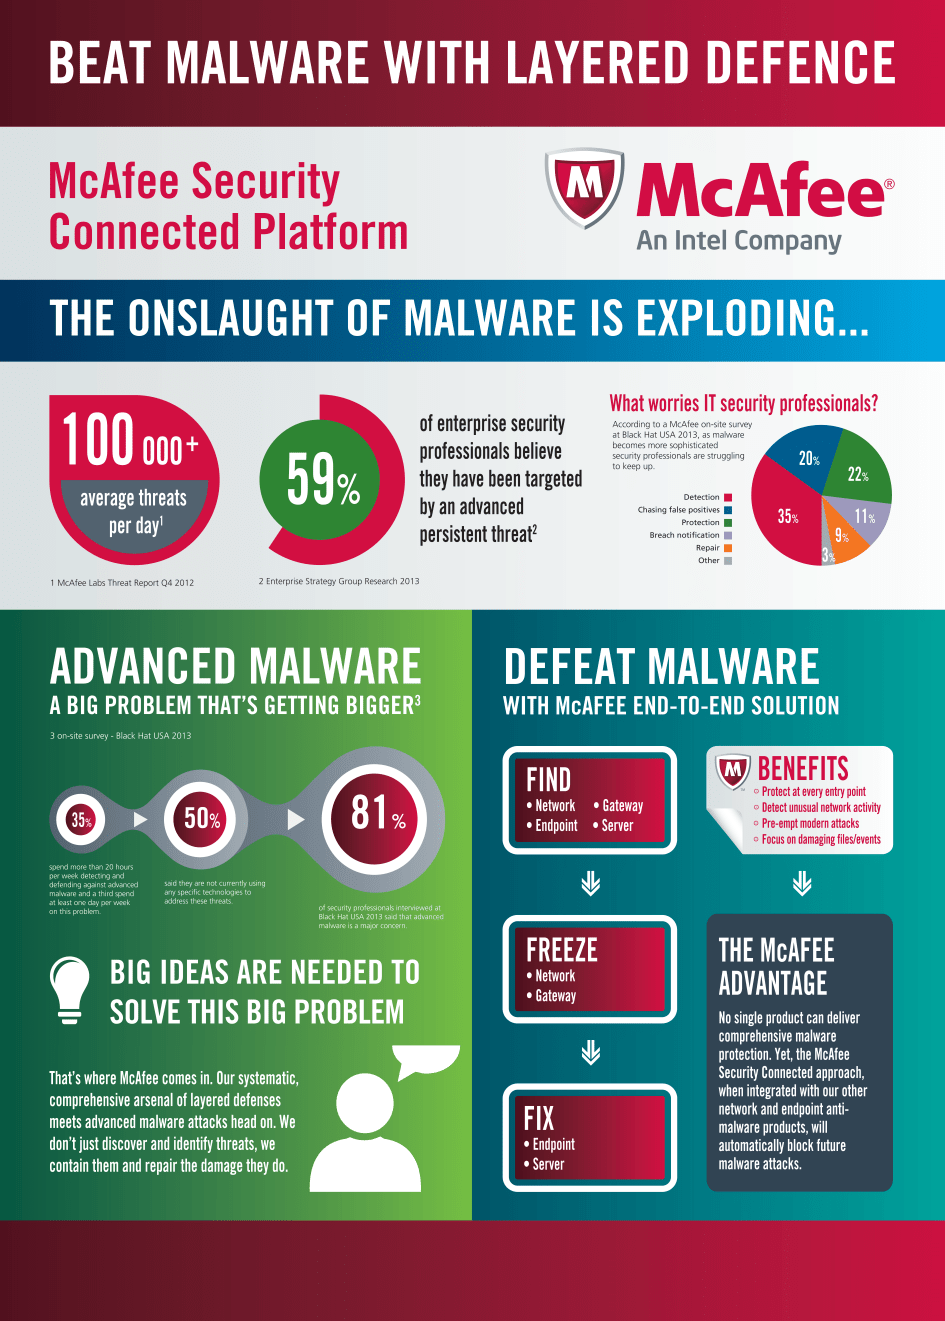 McAfee Offers Solution To Remediate Advanced Malware